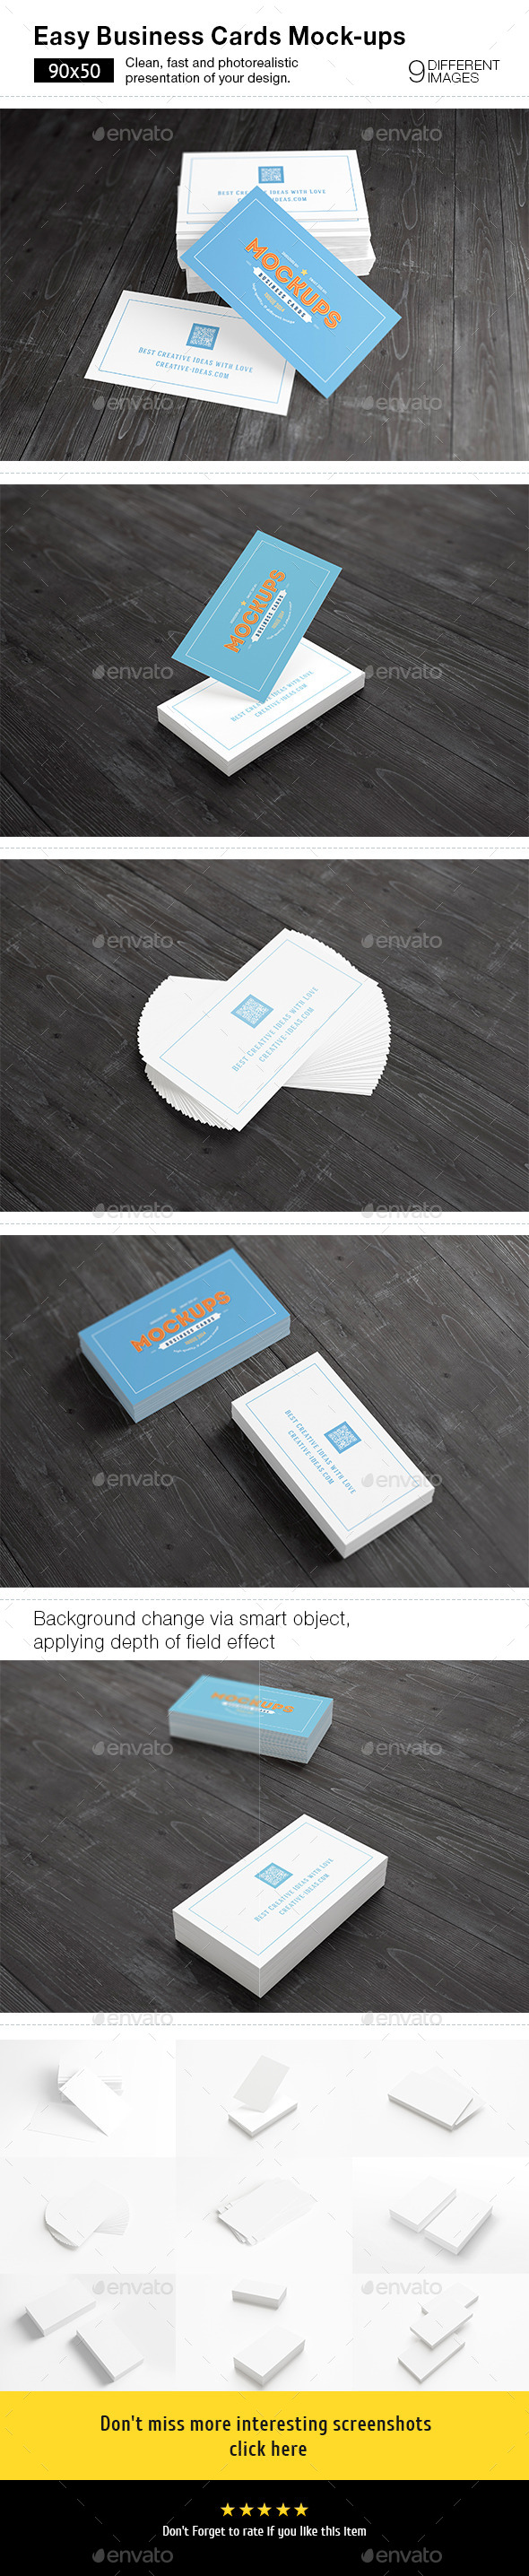 [90x50] Business Cards Mock-ups